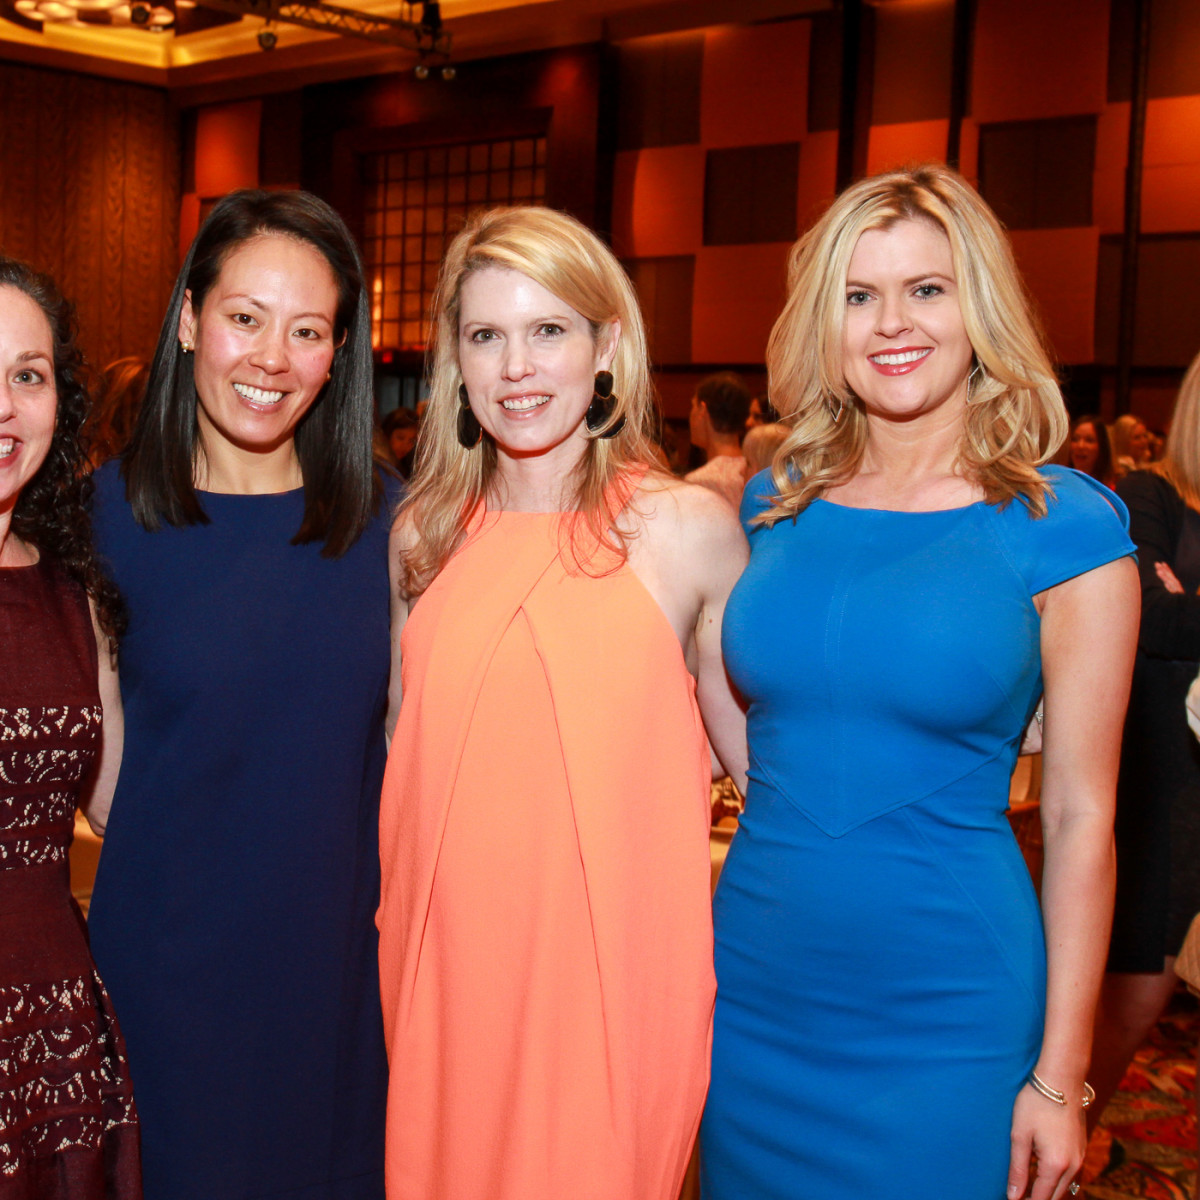 Best Dressed Luncheon, March 2016, Viviana Denechaud, Ting Bresnehan, Courtney Toomey, Ashlee Love